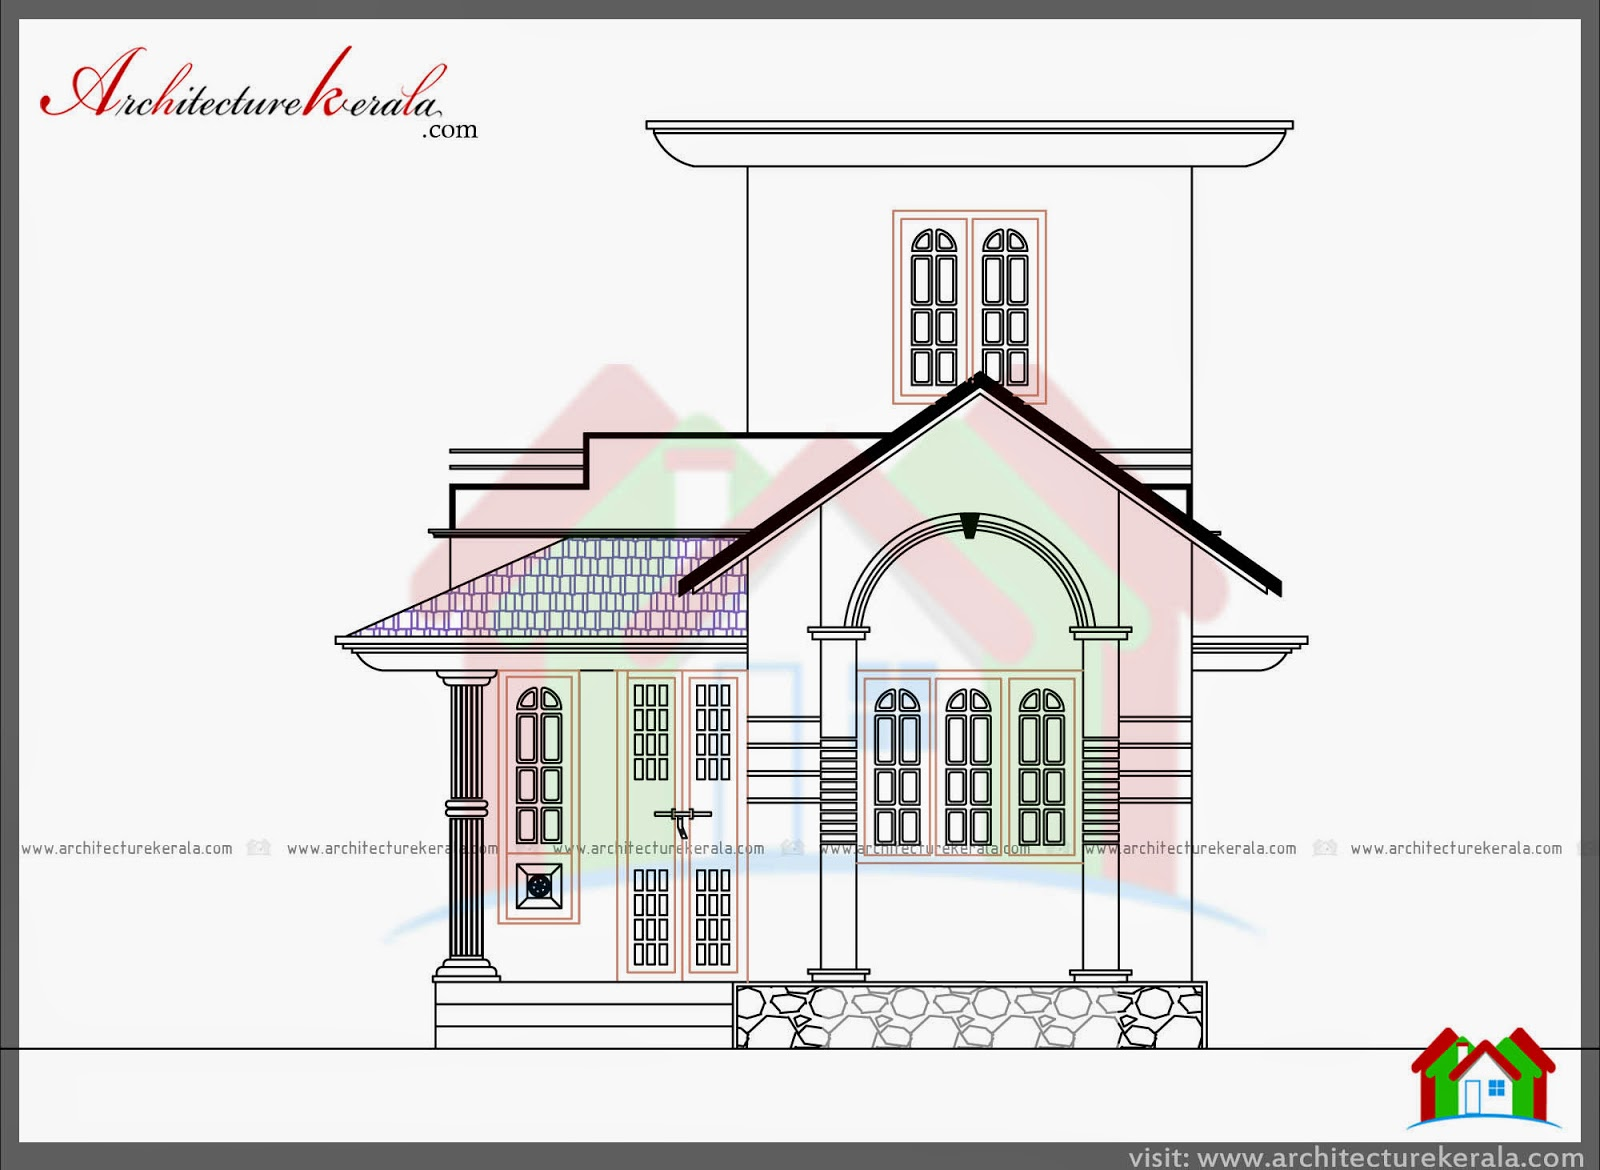 SQ FT HOUSE PLAN AND ELEVATION ARCHITECTURE KERALA - 750 sq ft house floor plans